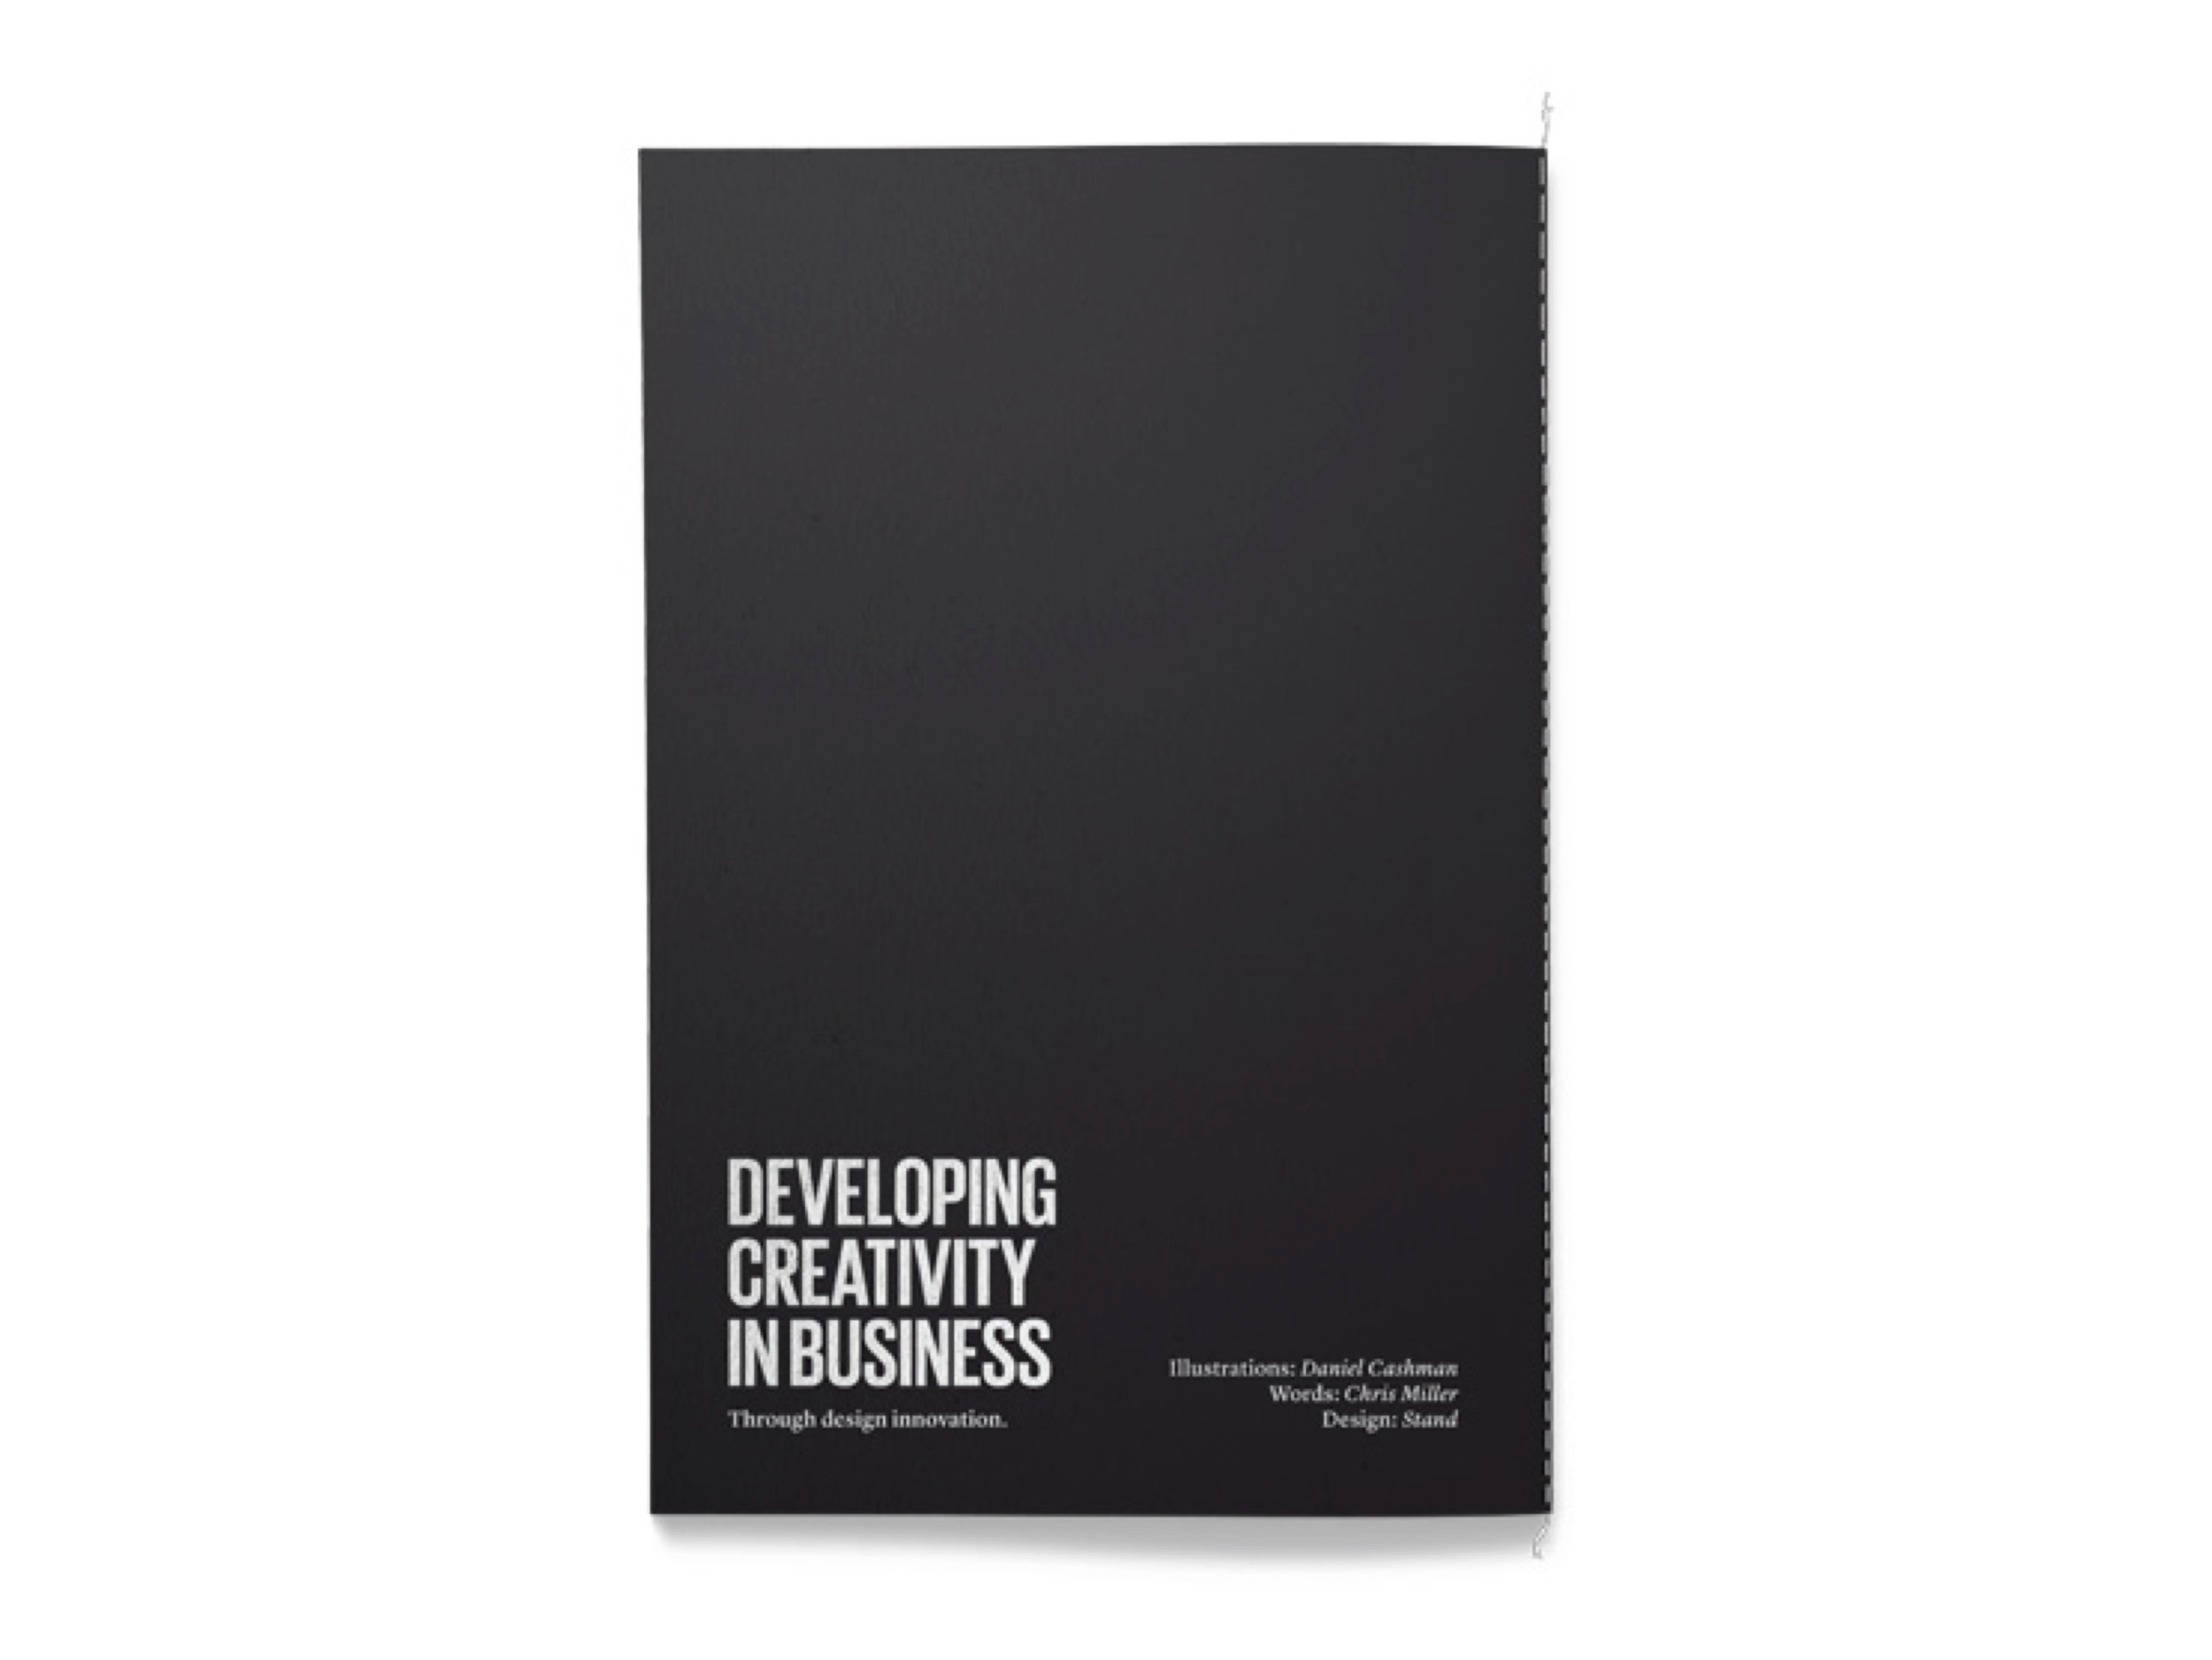 Creativity in Business booklet 20.jpg